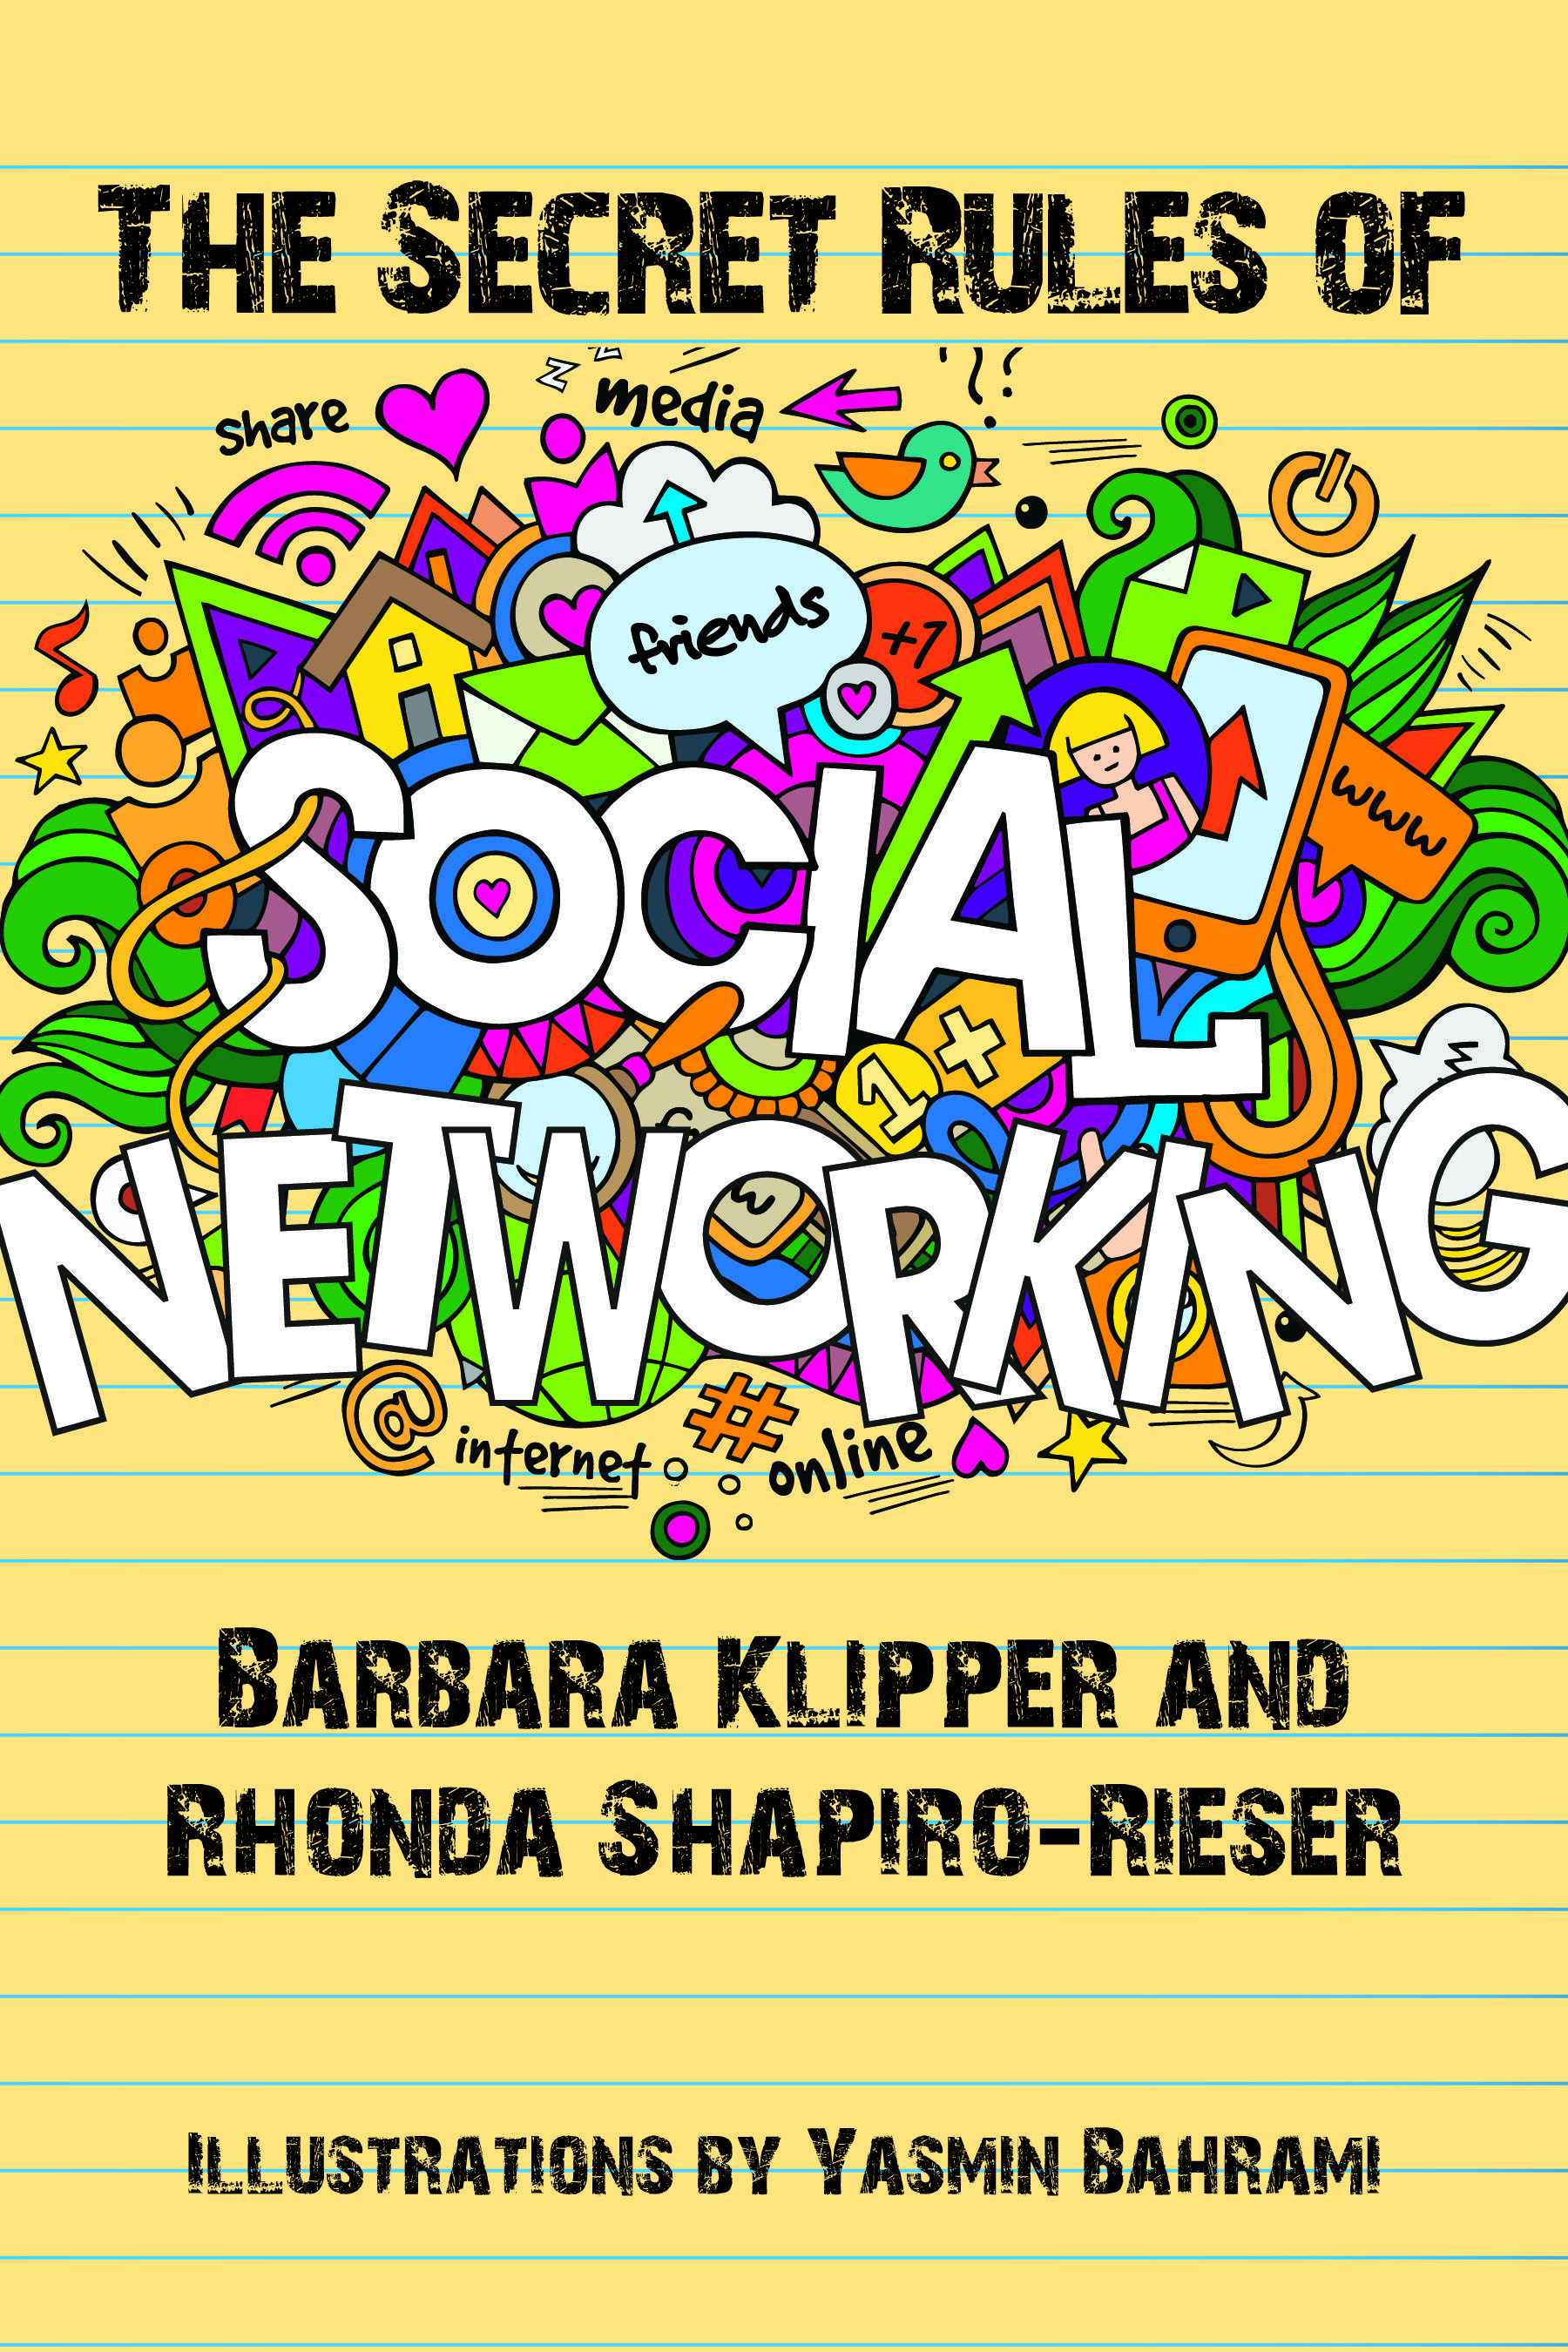 The Secret Rules Of Social Networking Demonstrates How